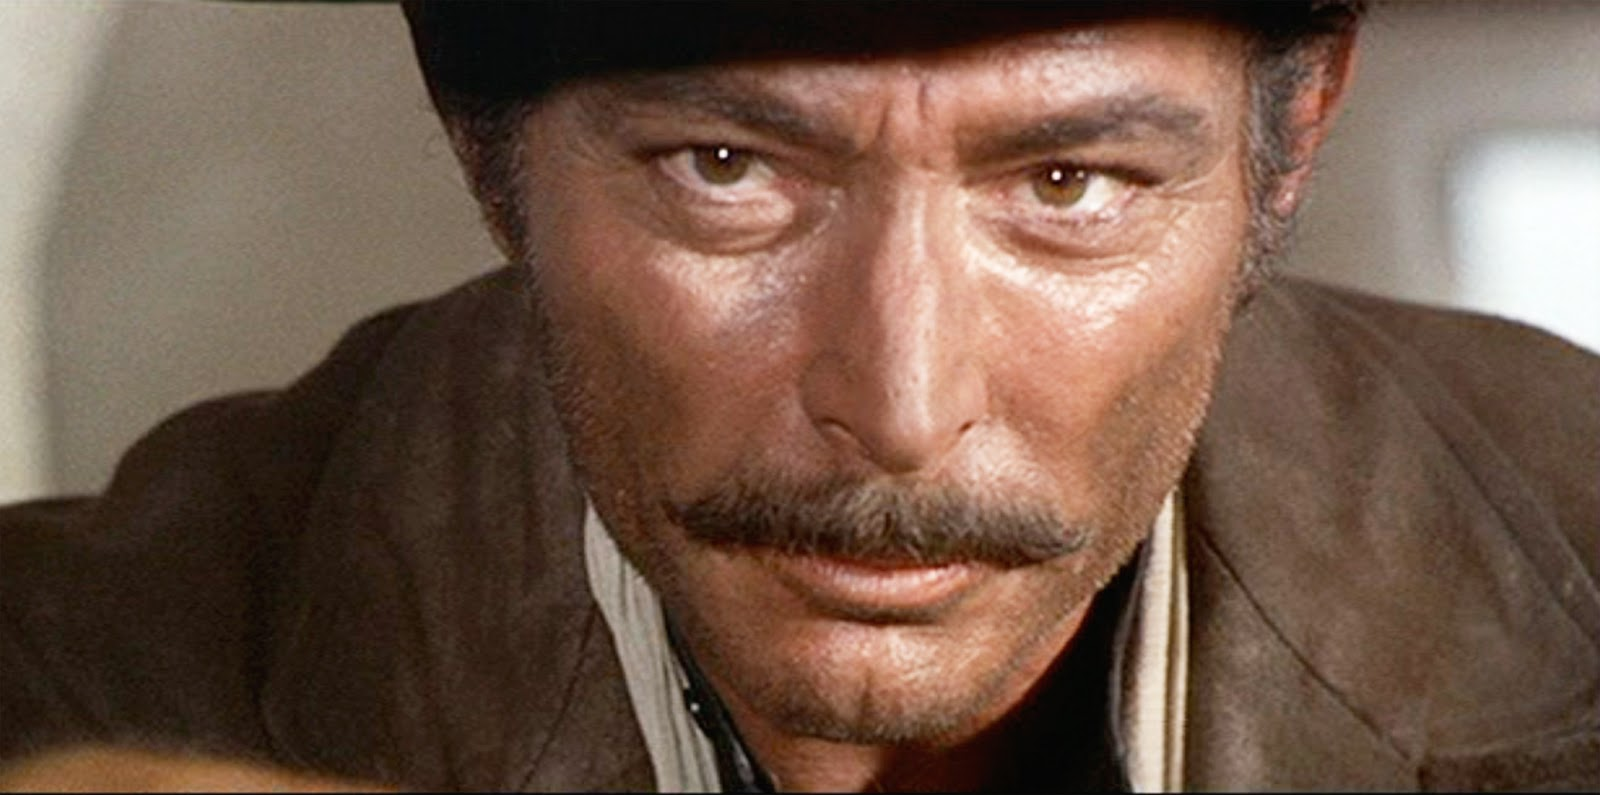 The Good The Bad And The Ugly Lee Van Cleef | thewealthbuilding